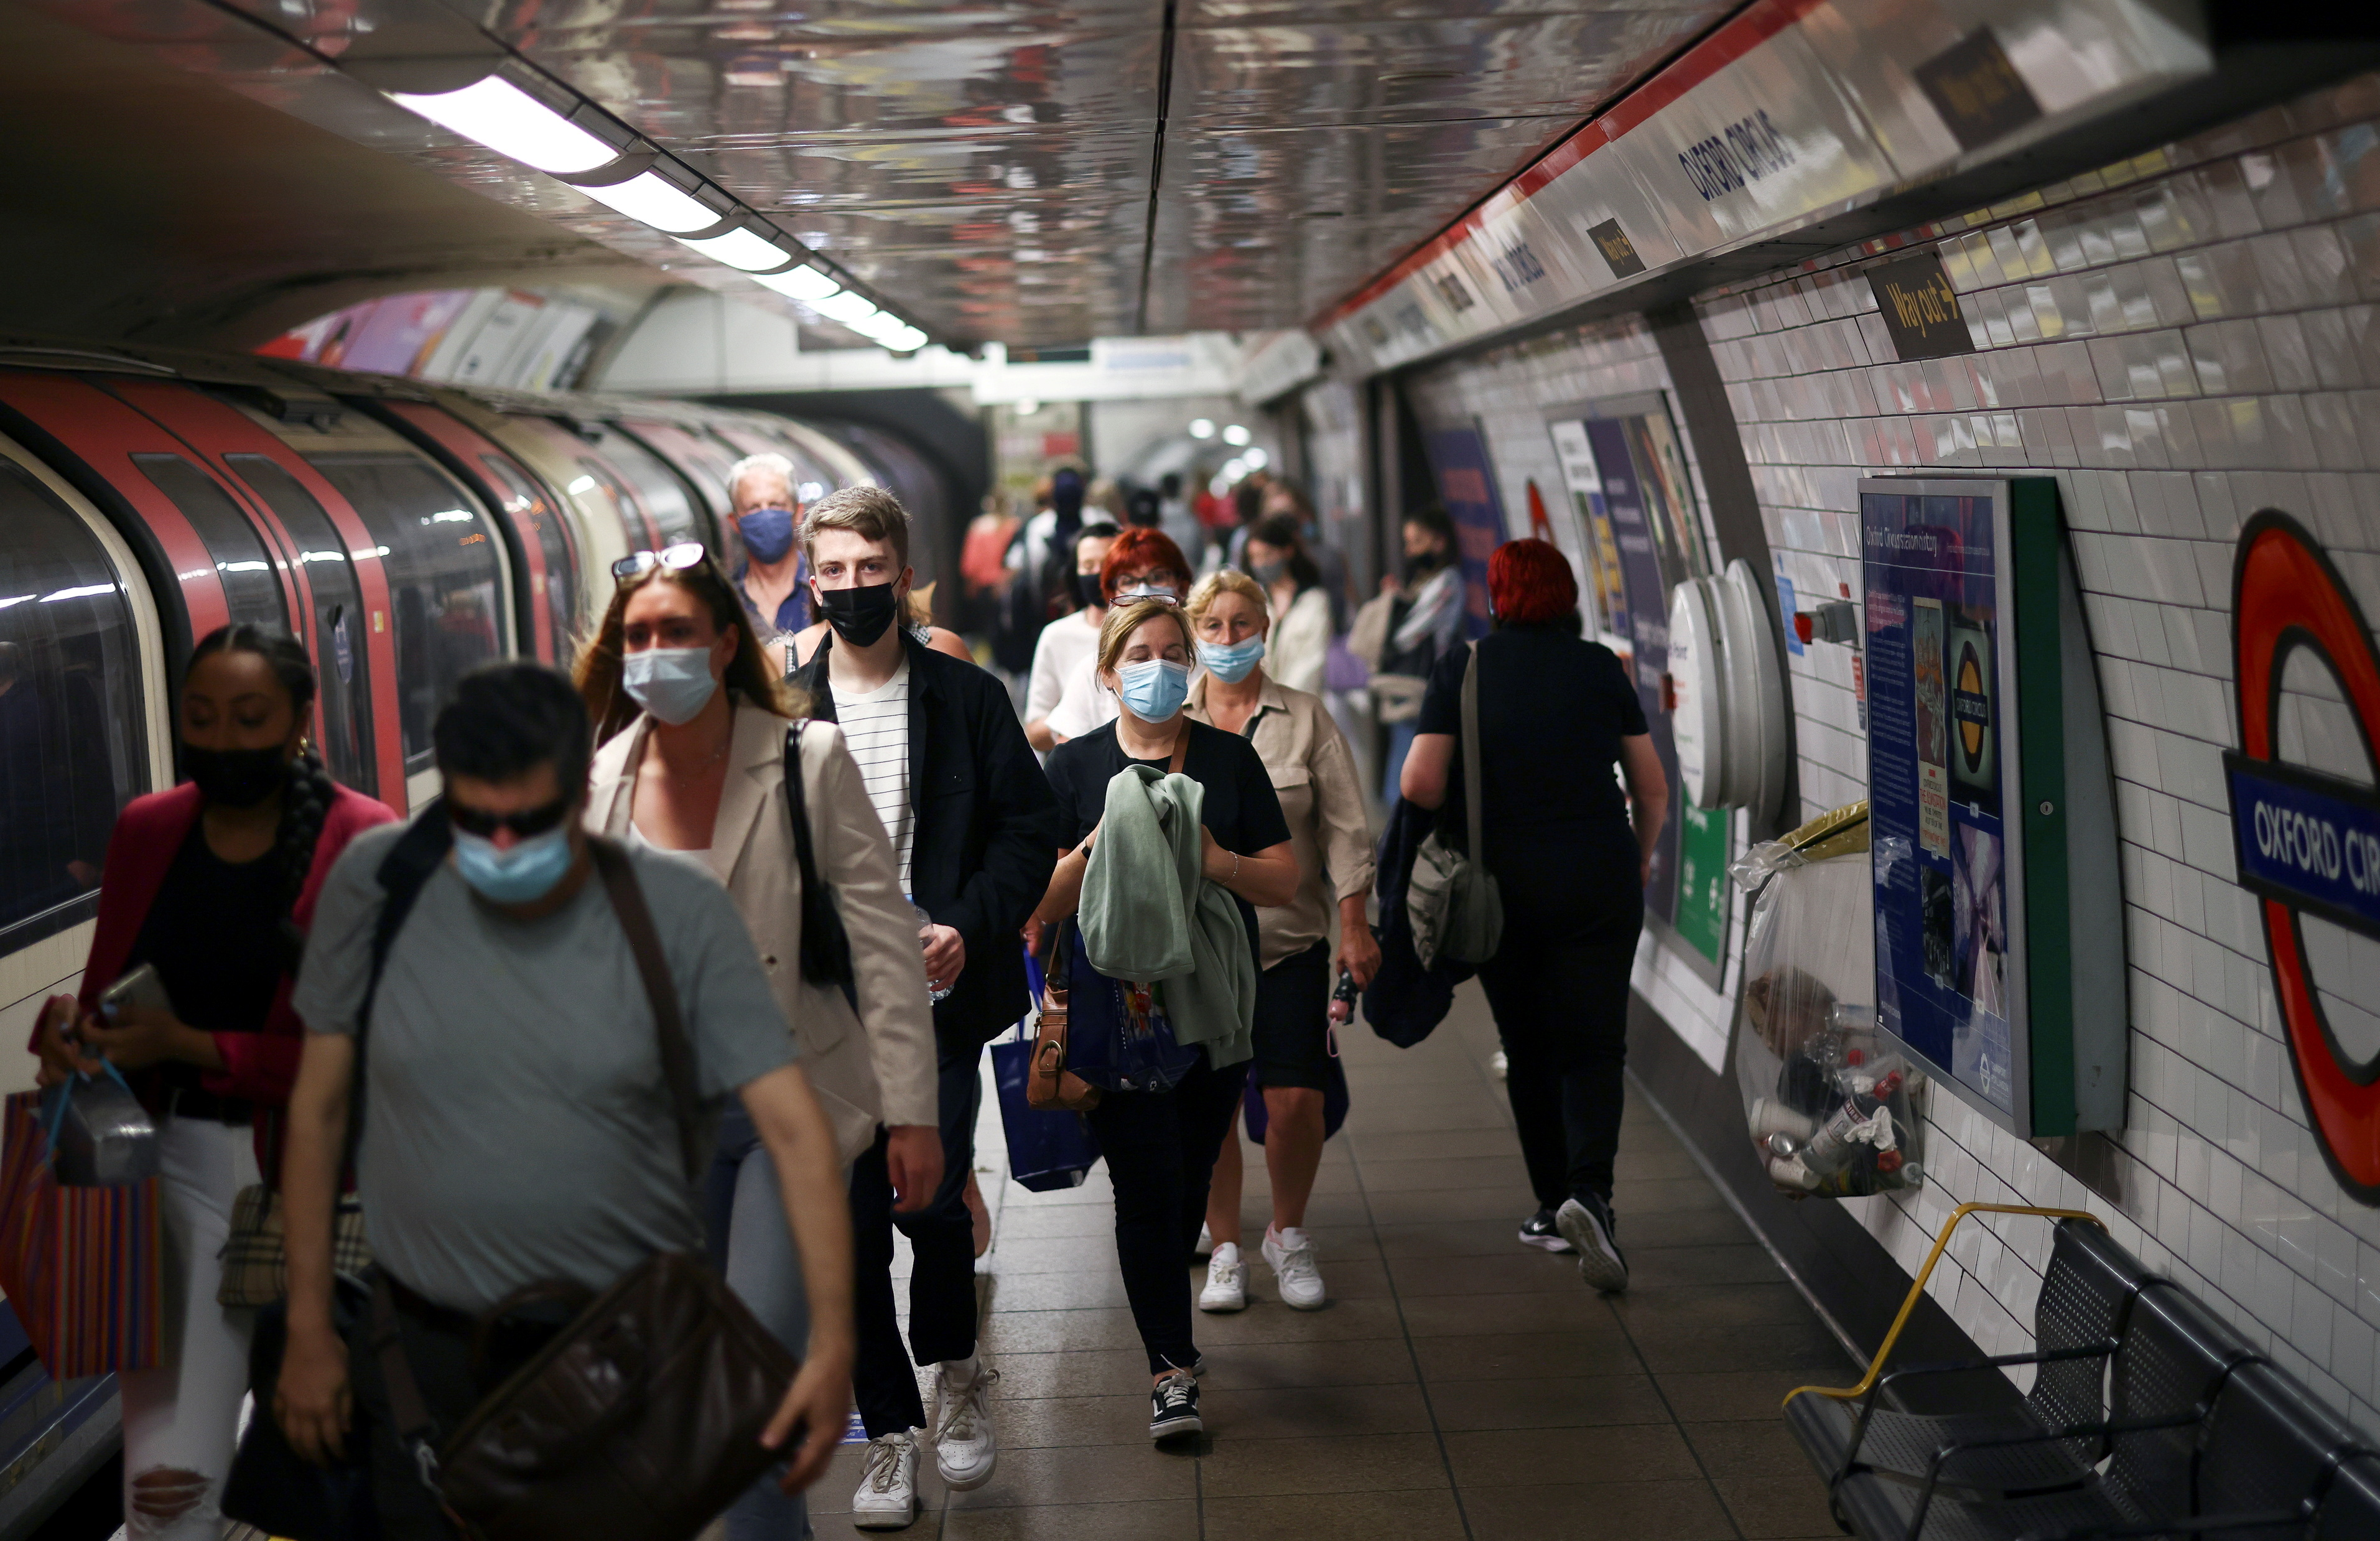 People, some wearing protective face masks, walk along a platform at Oxford Circus underground station, amid the coronavirus disease (COVID-19) pandemic, in London, Britain, July 4, 2021. REUTERS/Henry Nicholls